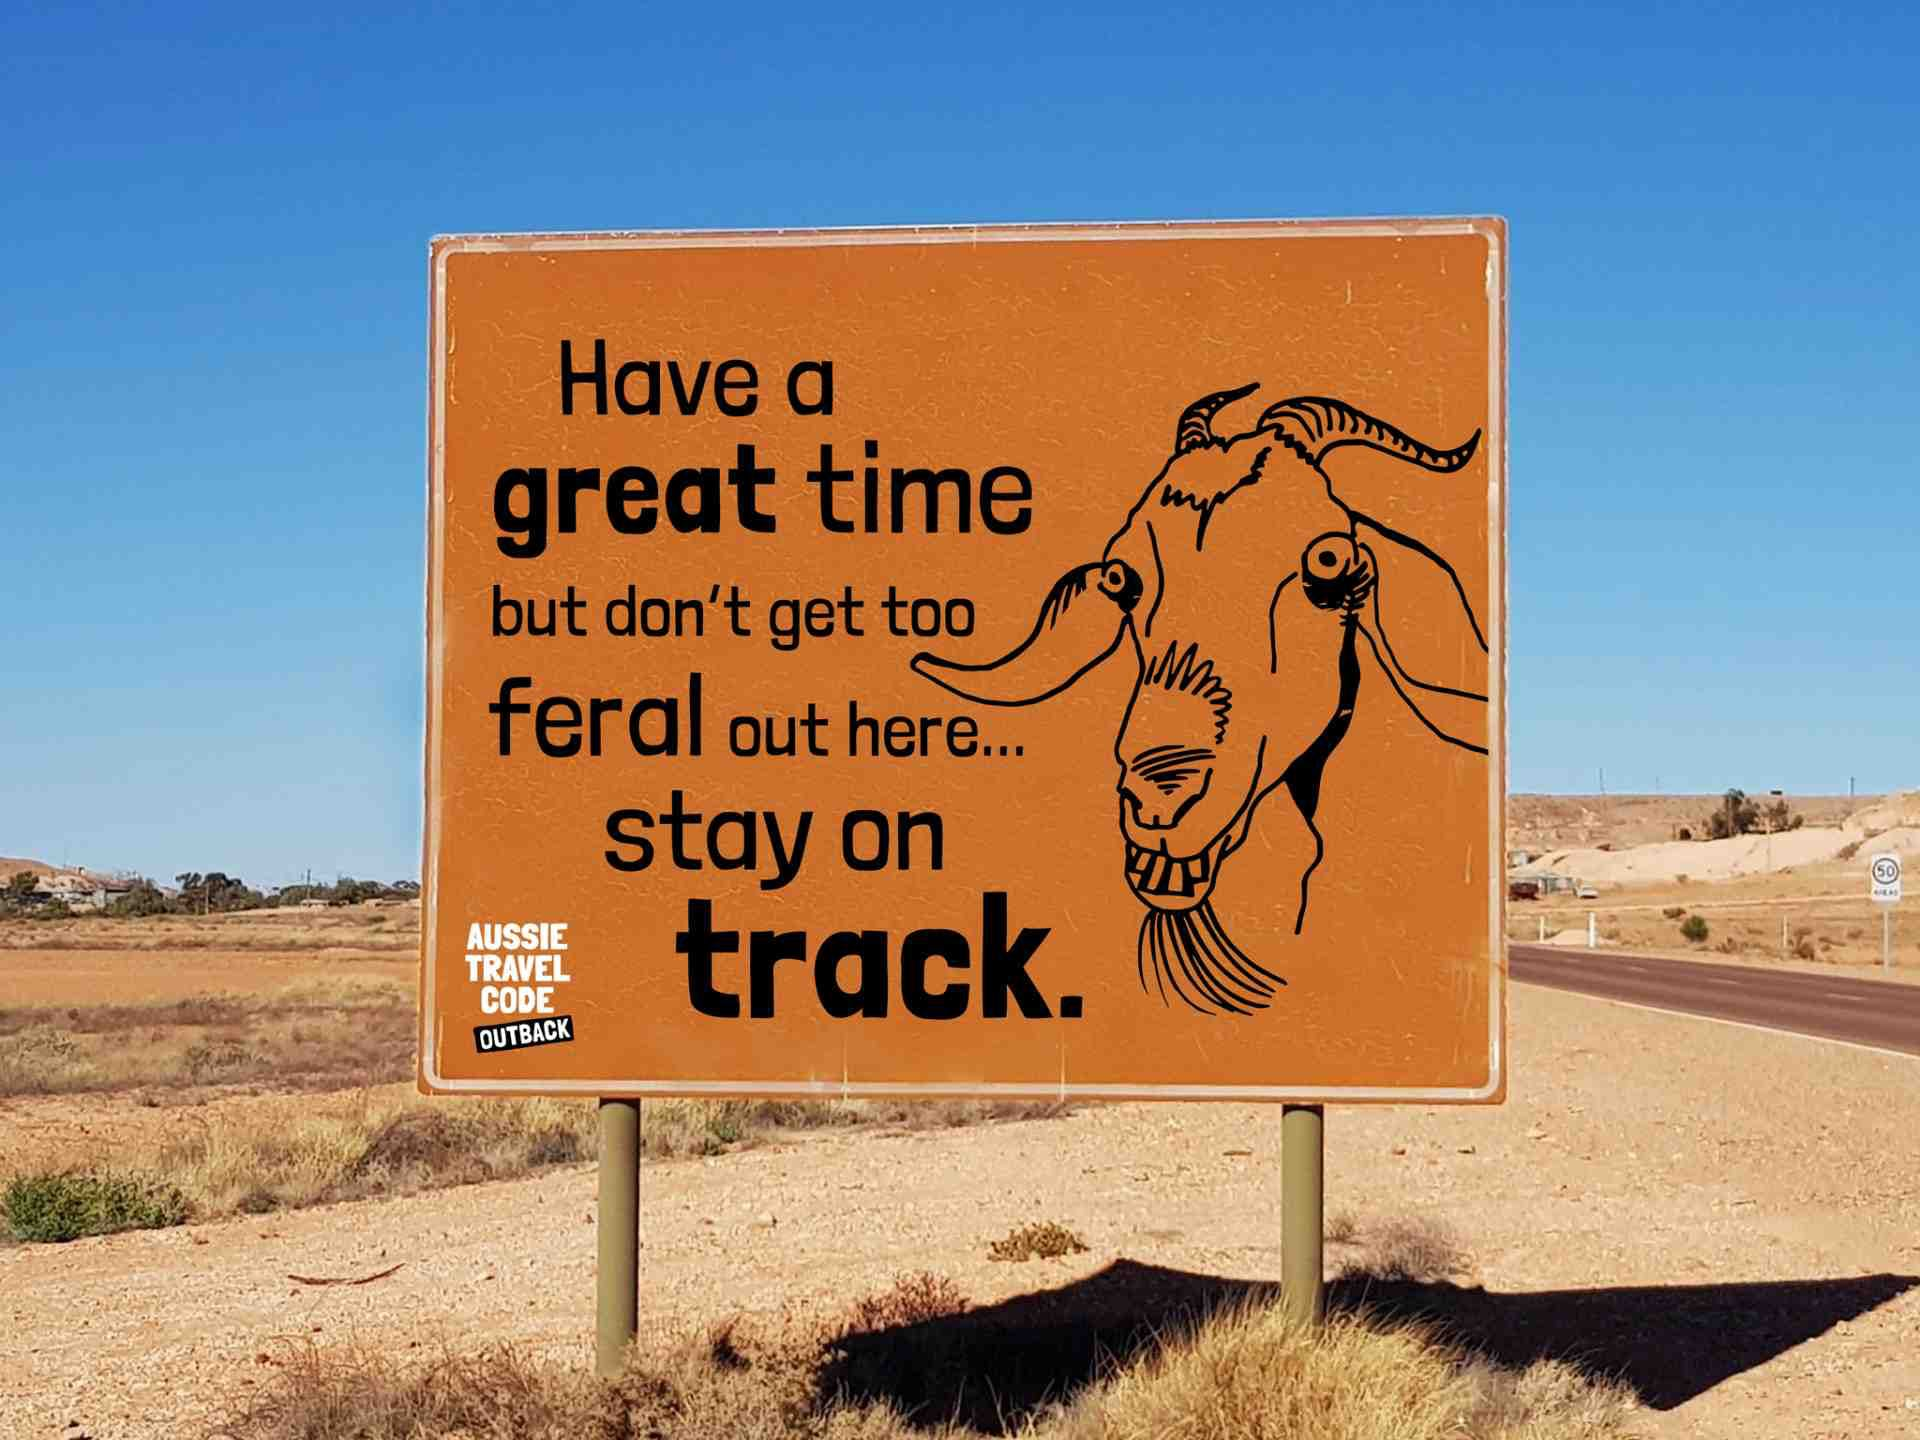 Aussie Travel Code Don't Get Too Feral Out There